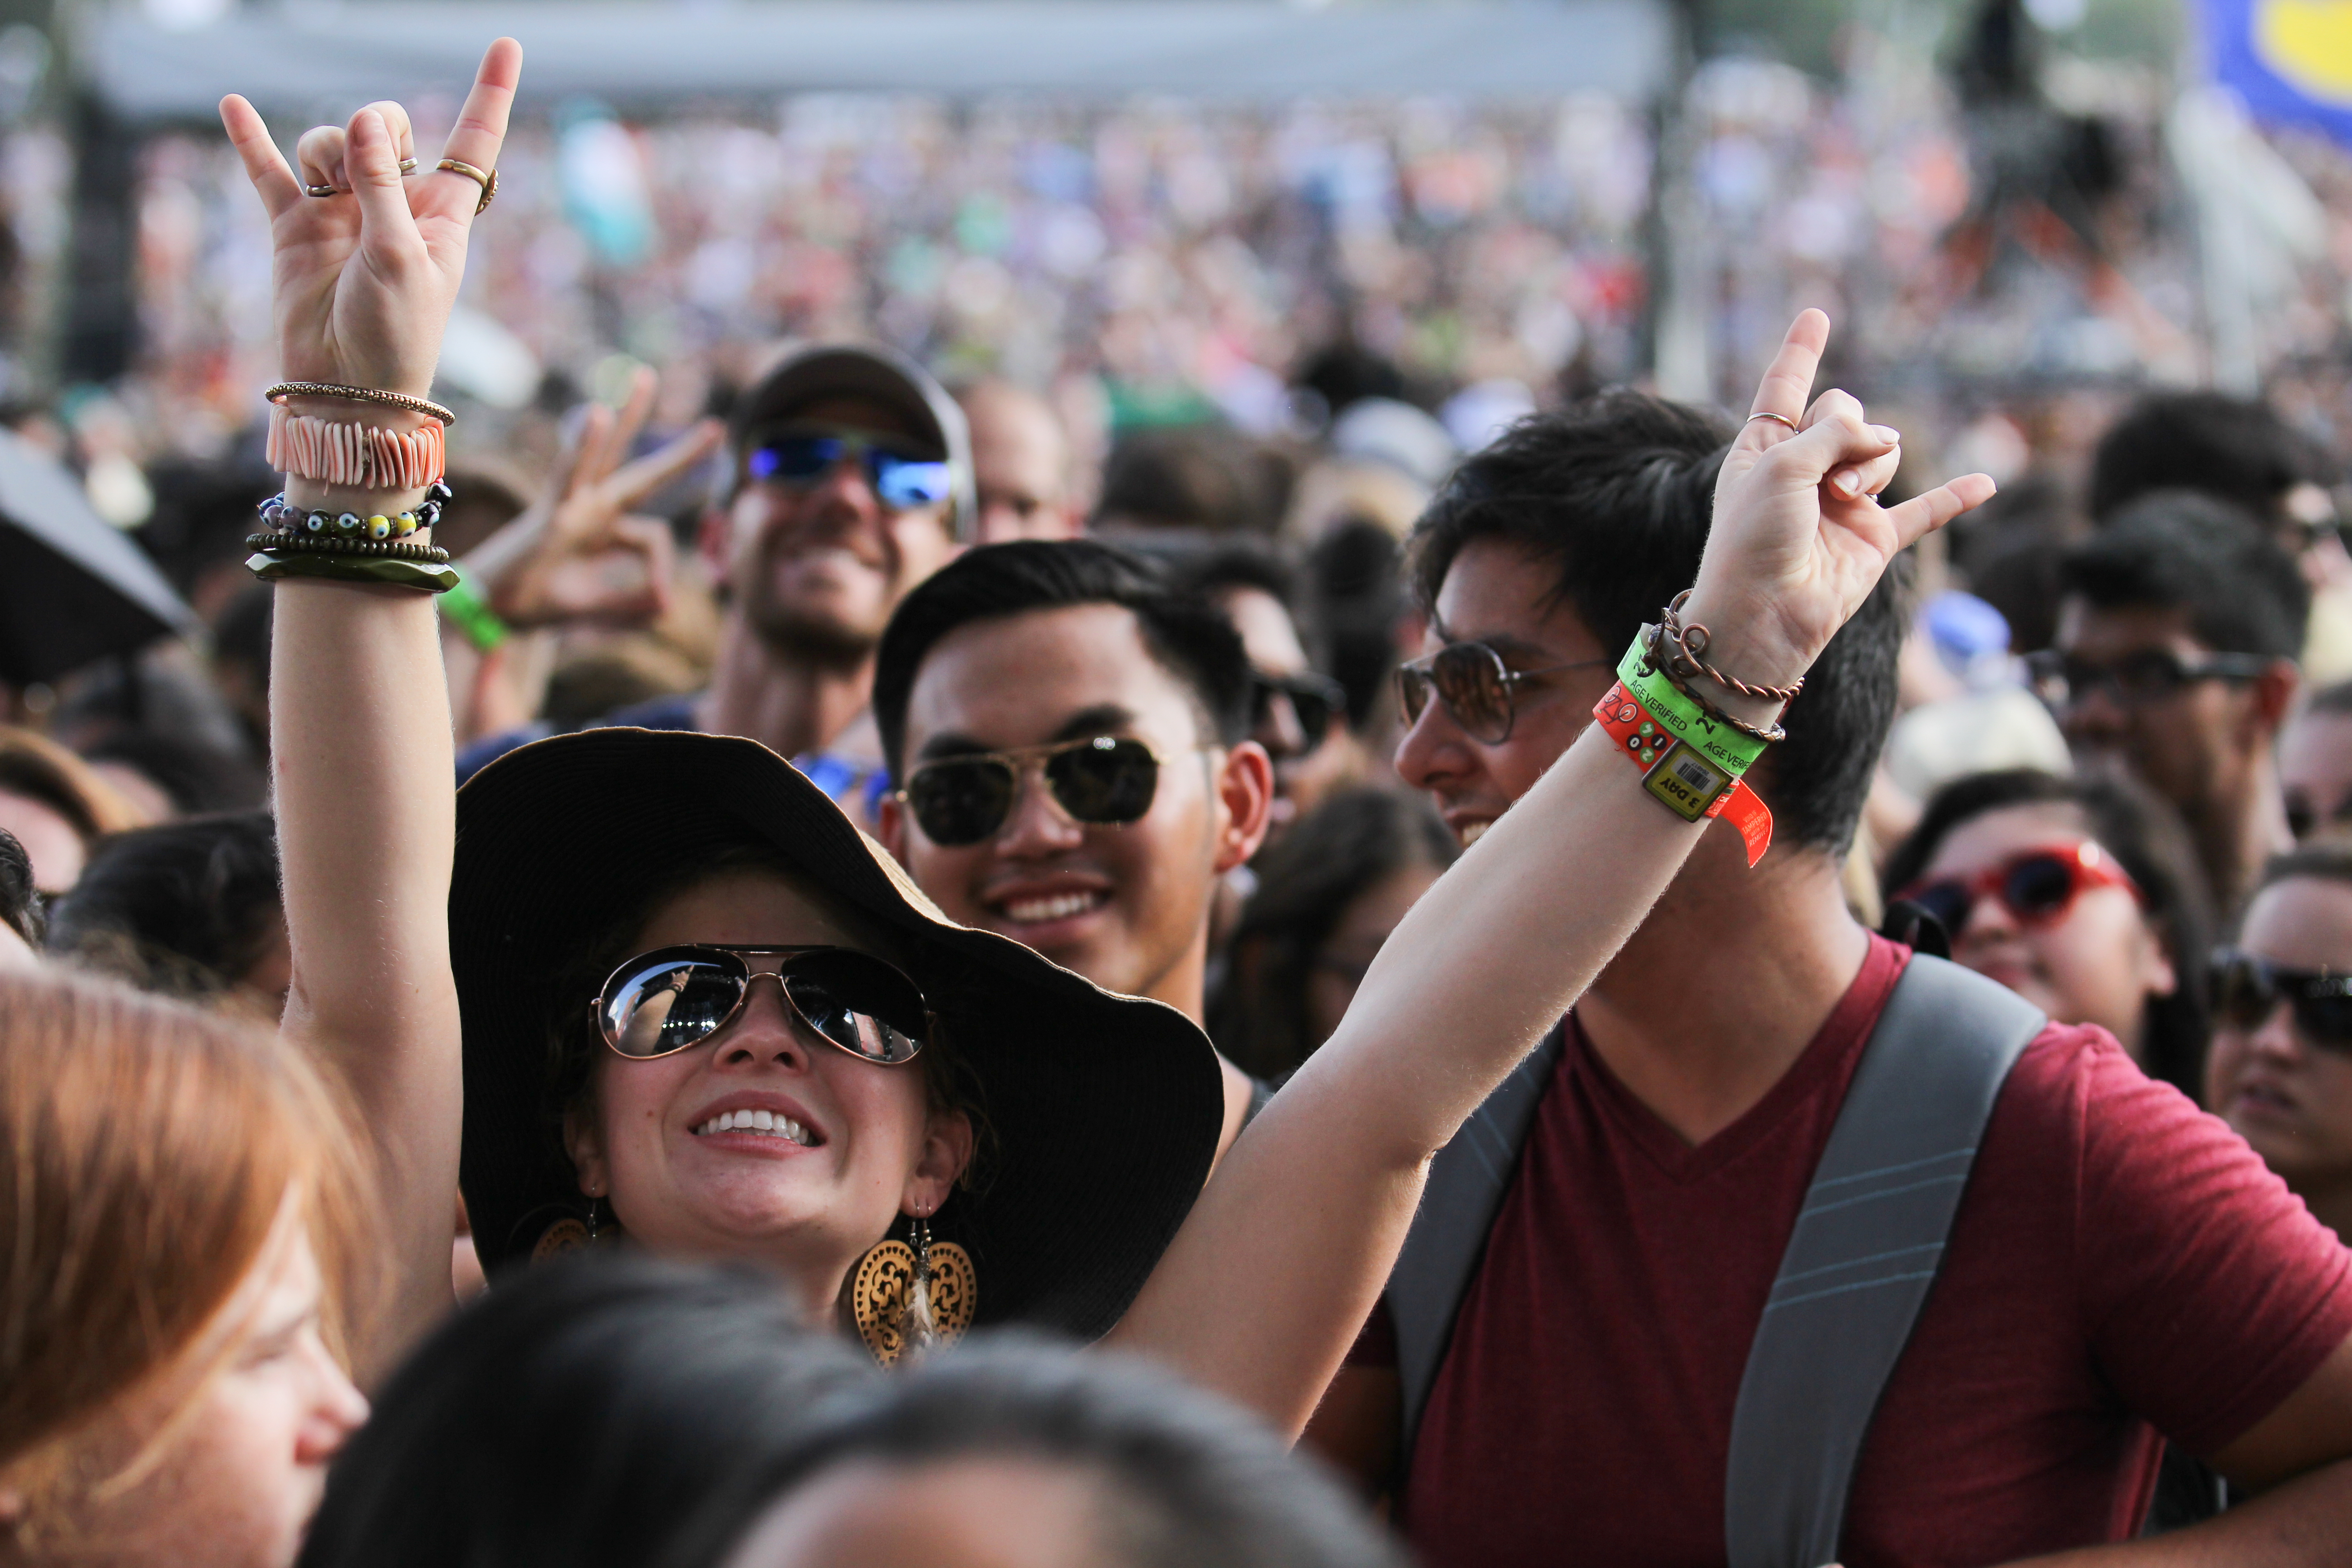 TVD Live: Austin City Limits, Weekend Two, Good Vibes